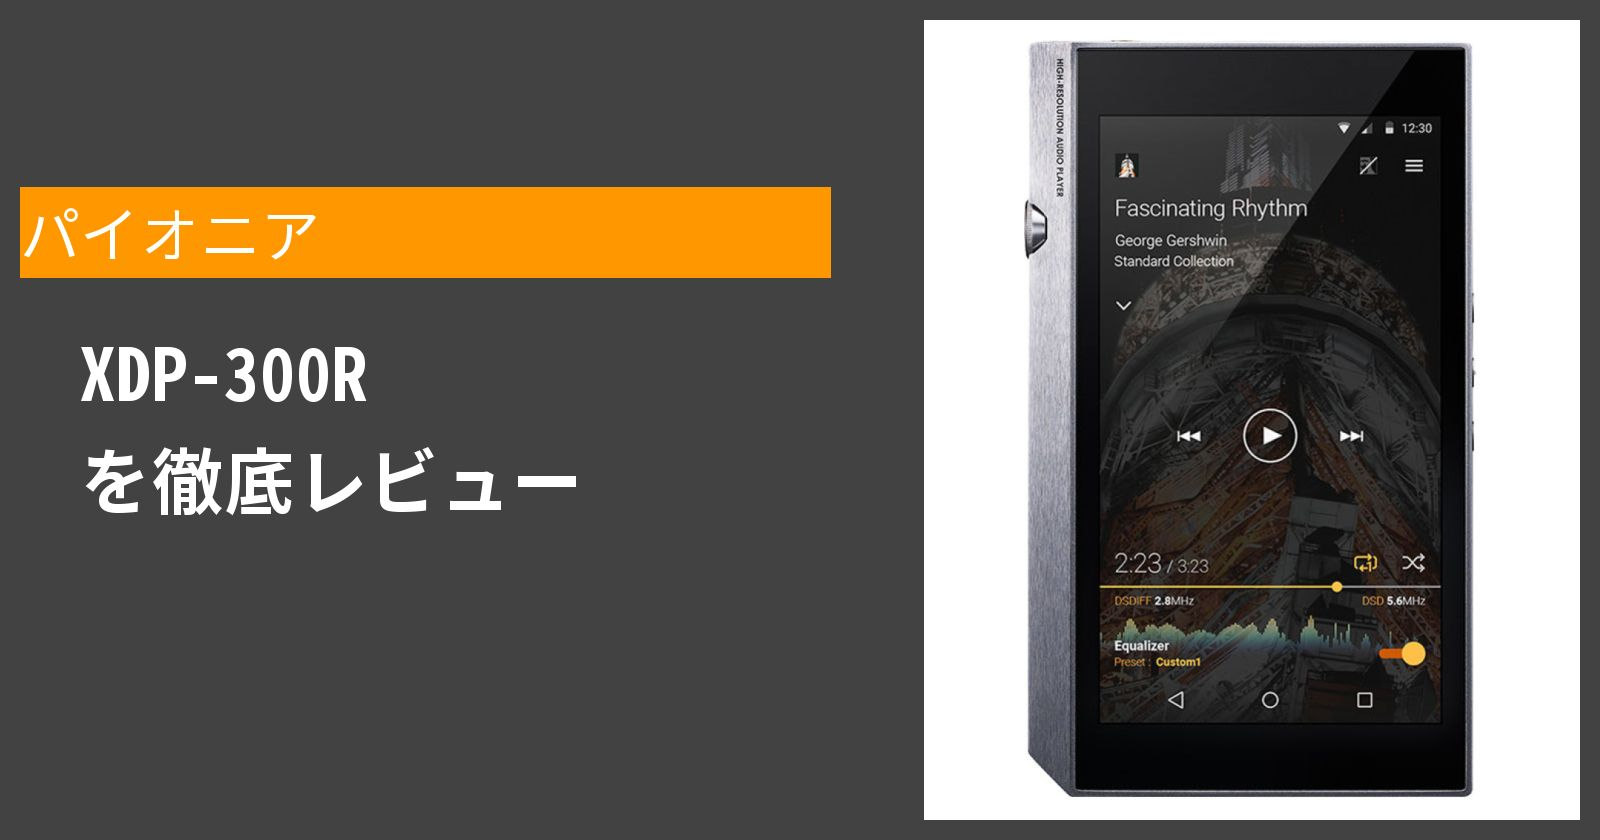 XDP-300Rを徹底評価